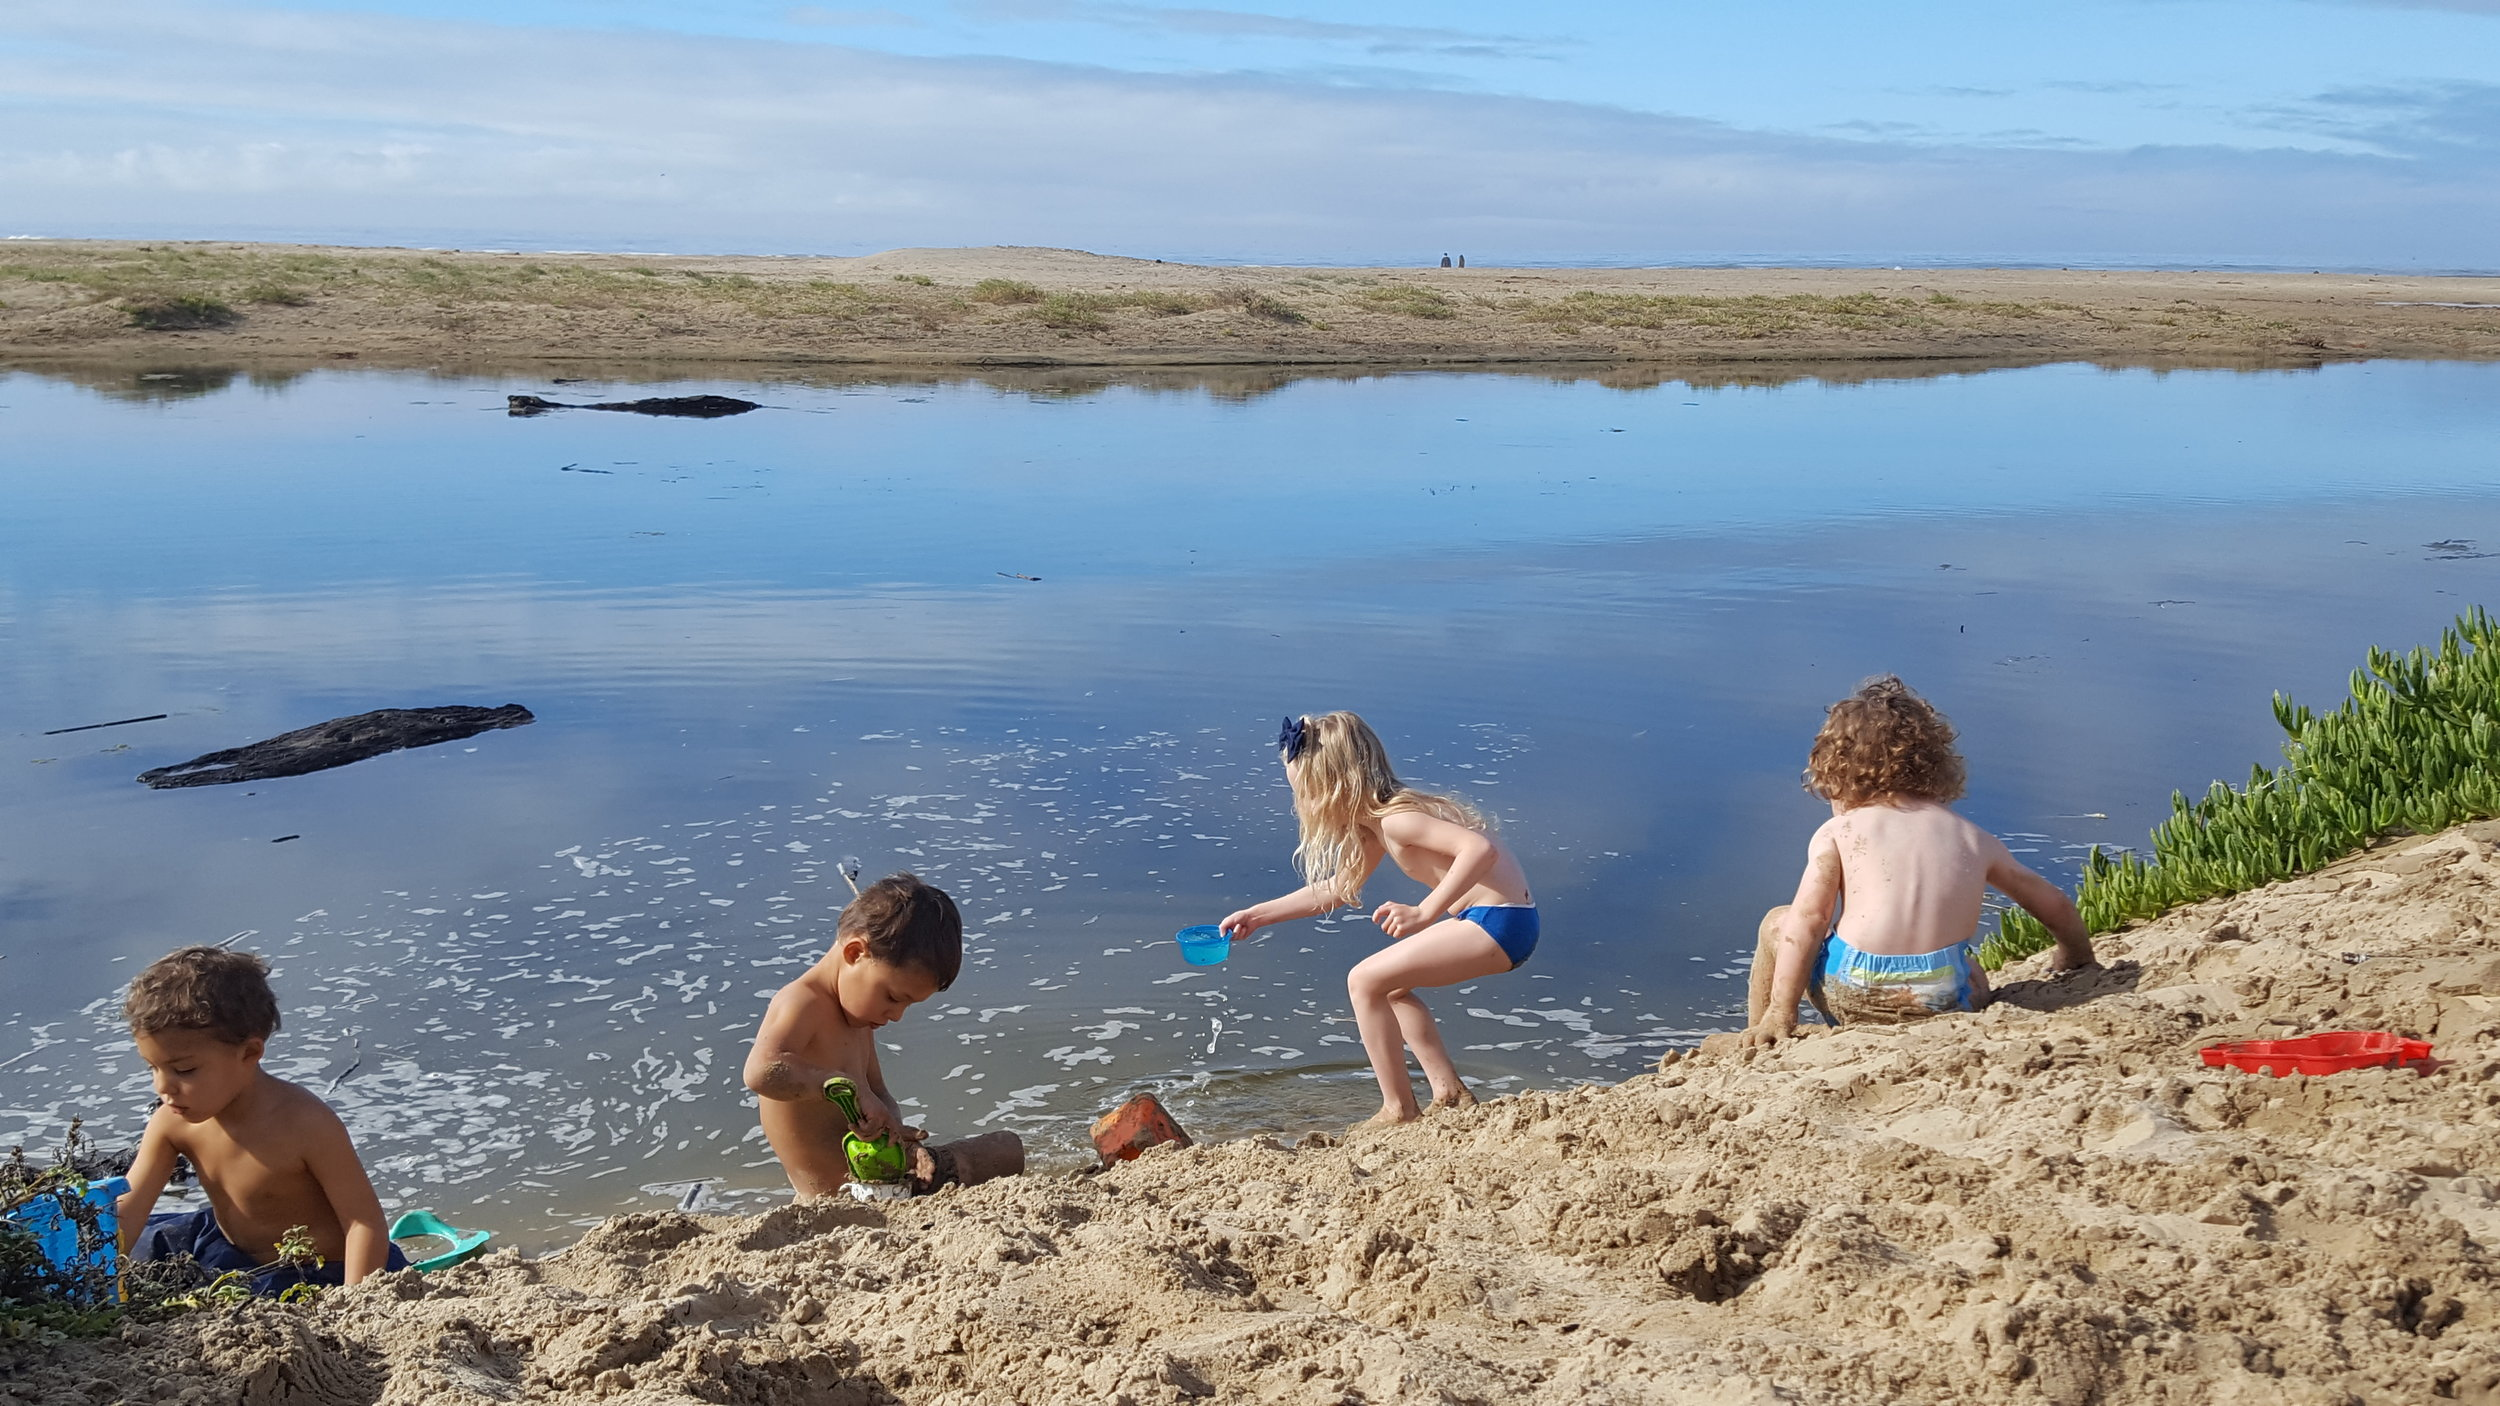 Digging, scooping, tossing, and swimming in sand and water!